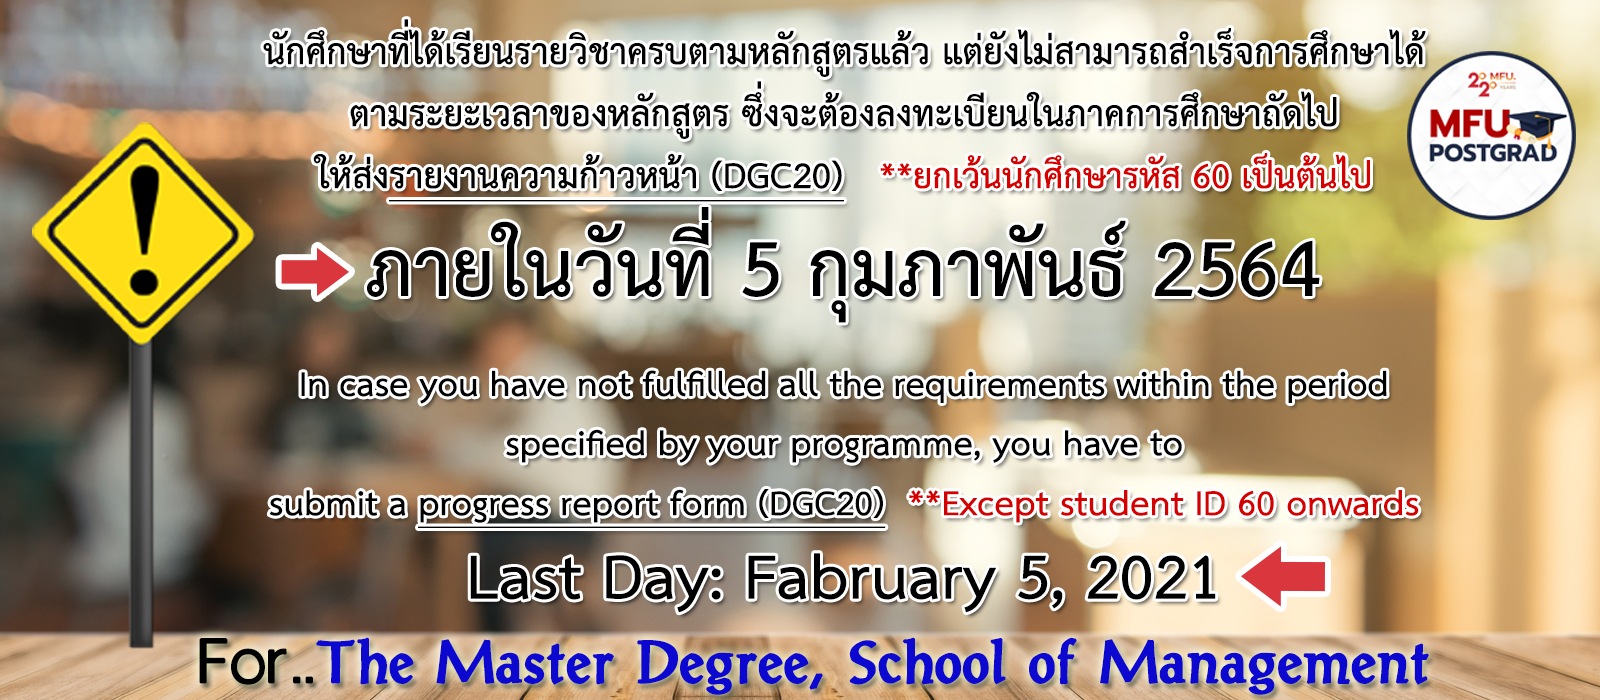 Submit a progress report form (DGC20) 1/2020 (For..The Master Degree, School of management)